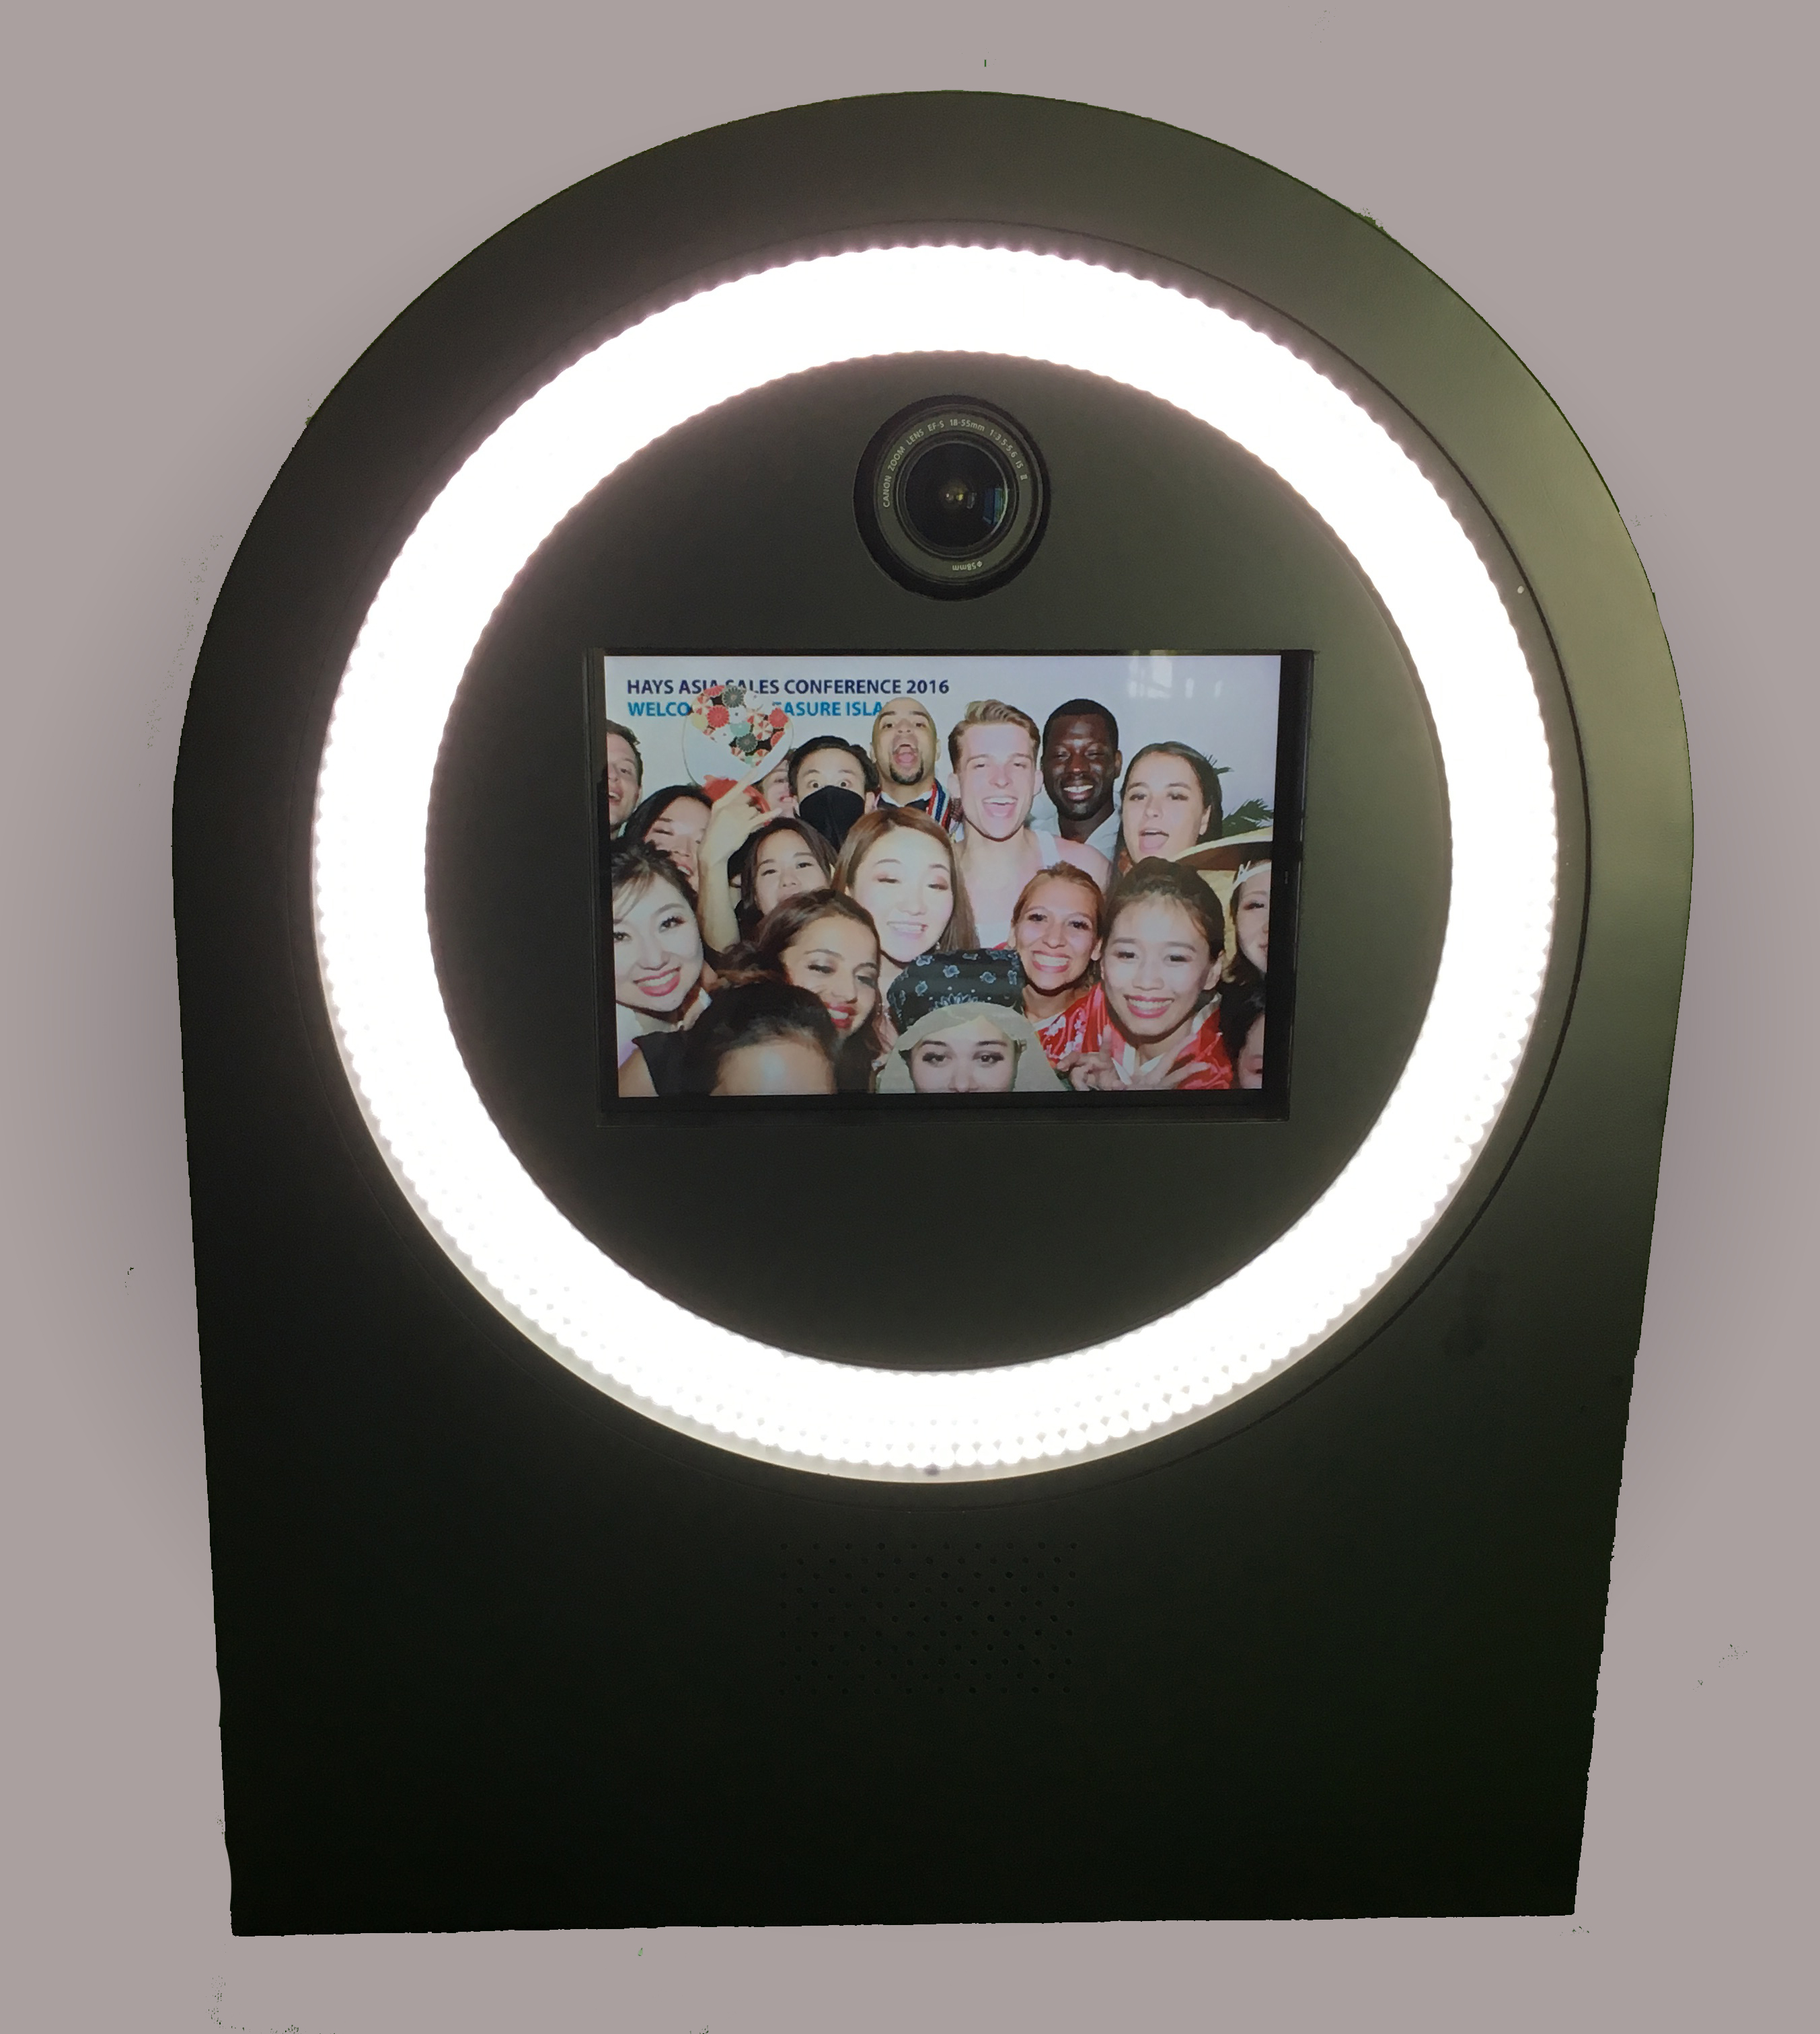 THE RING LIGHT PHOTO BOOTH INTRODUCING COST EFFECTIVE